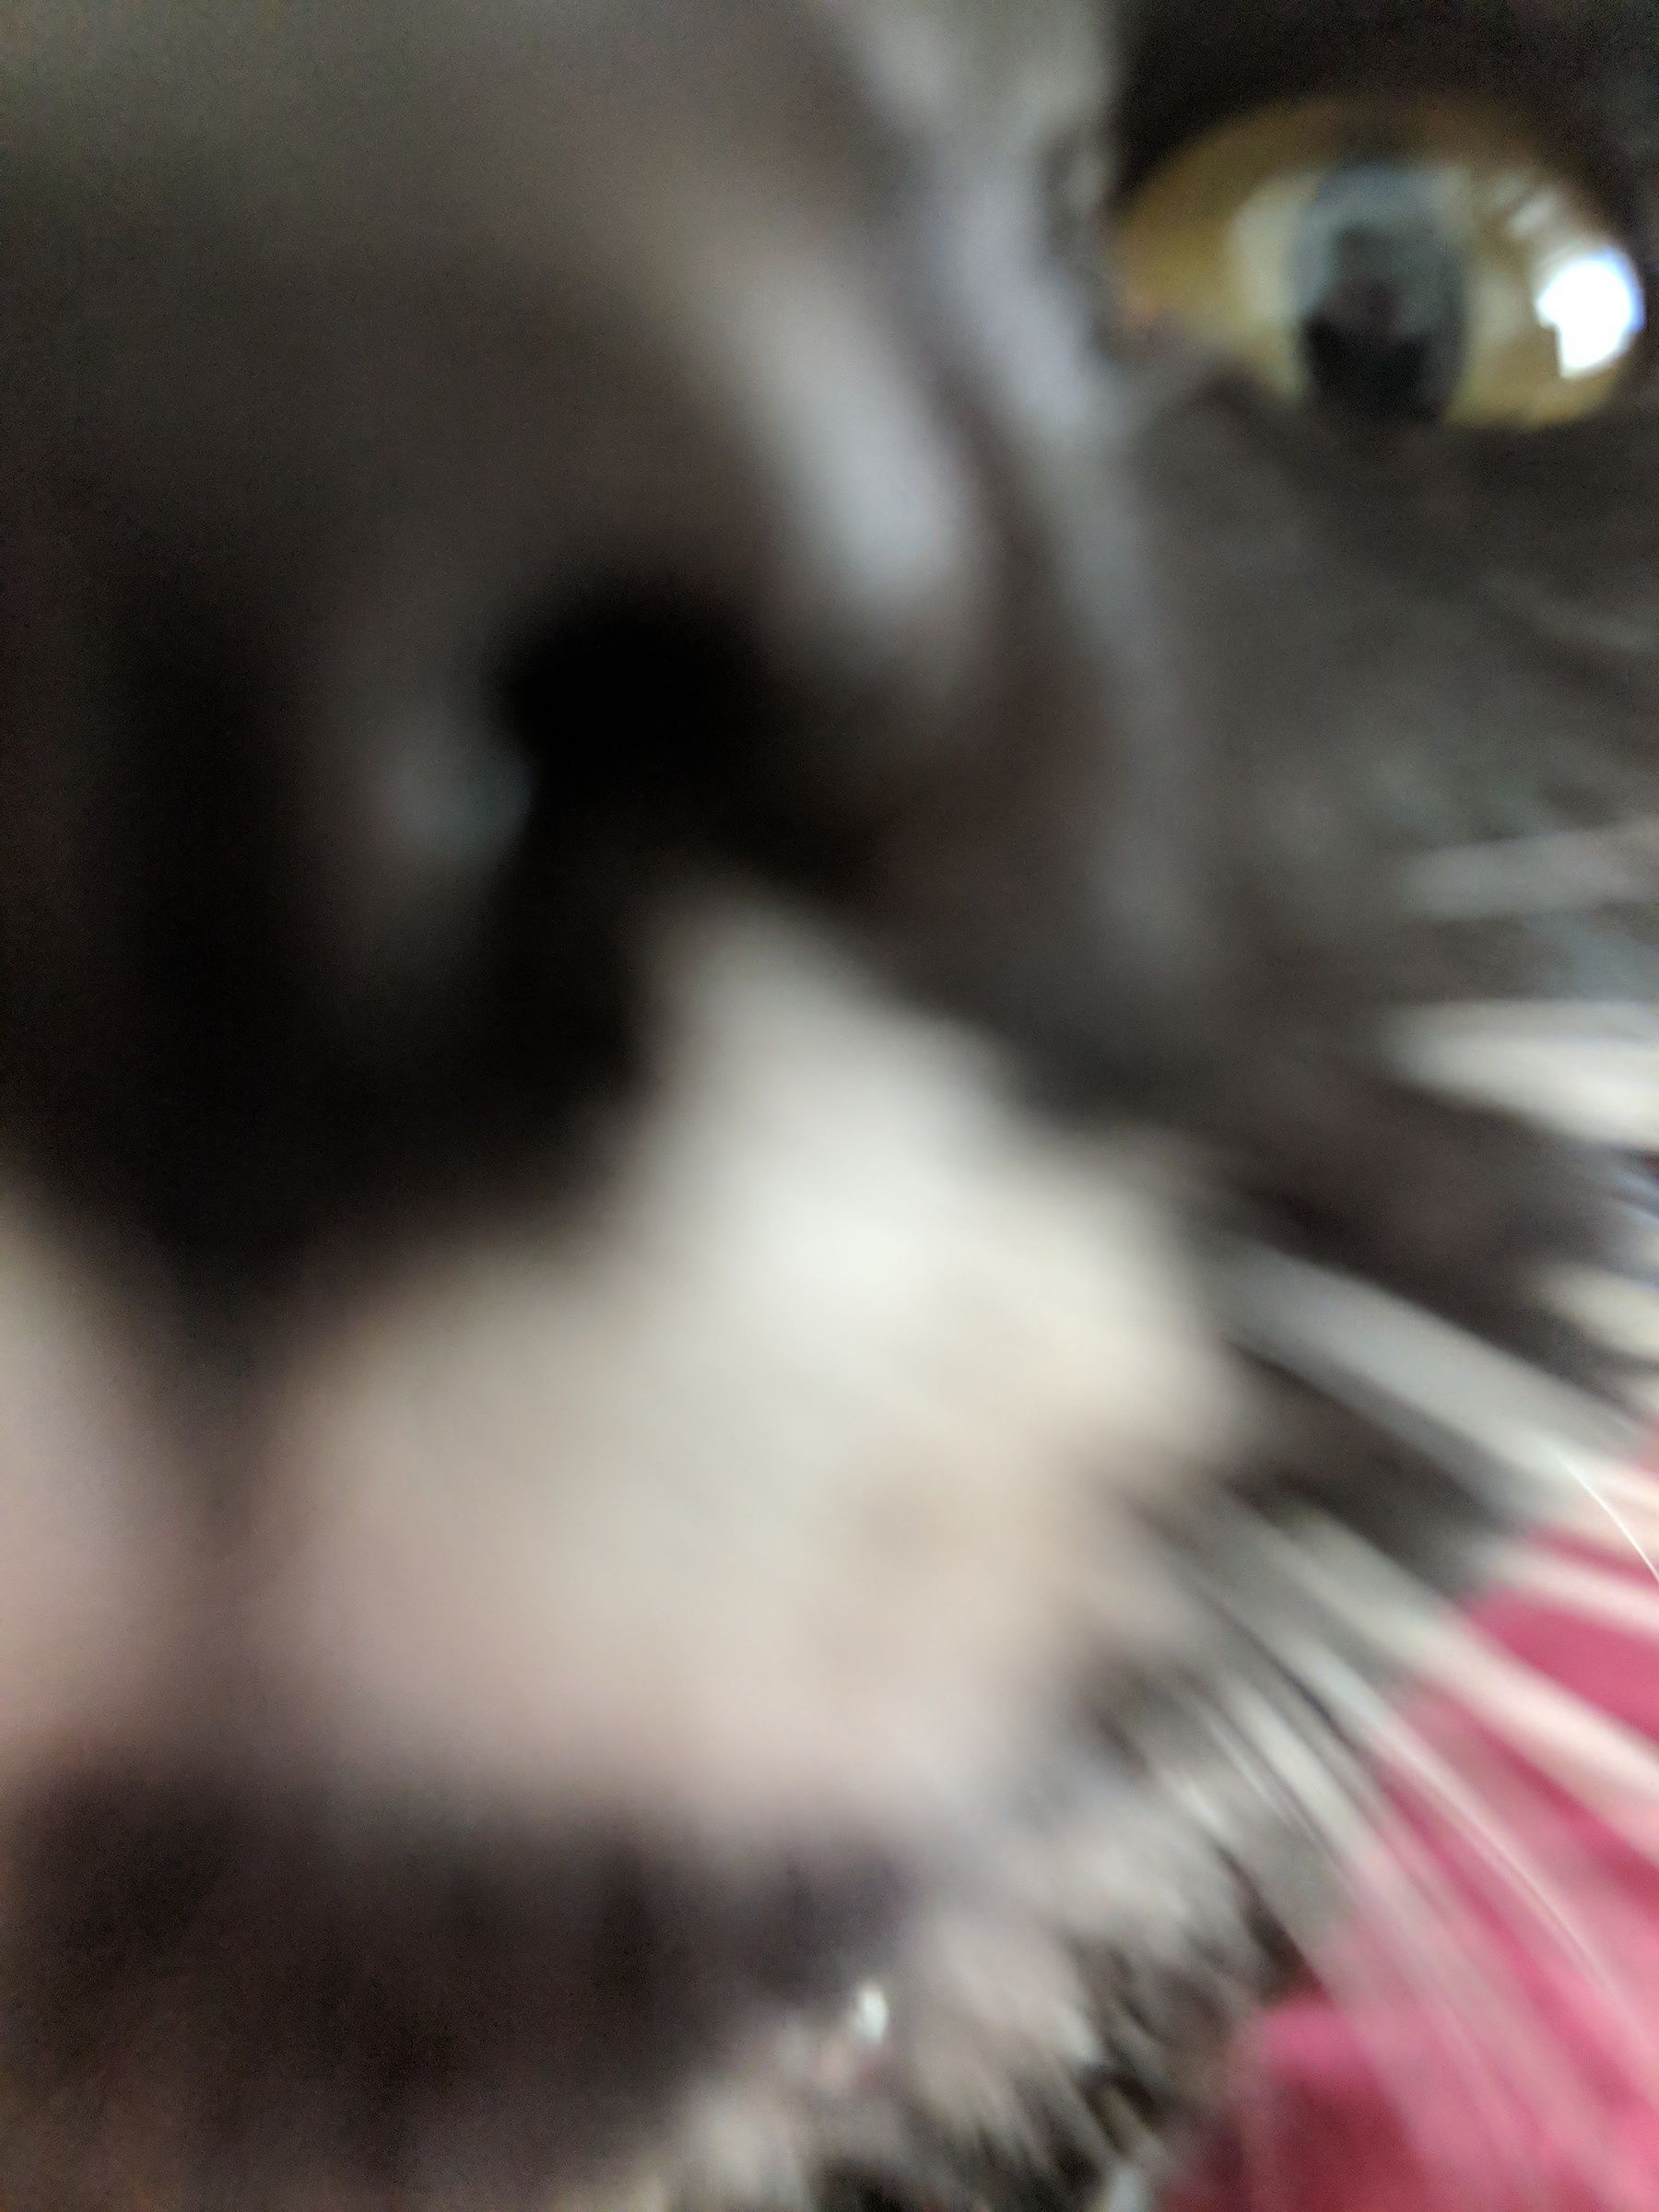 A blurry black and white cat, very close to the camera so that her nose is almost touching the lens.